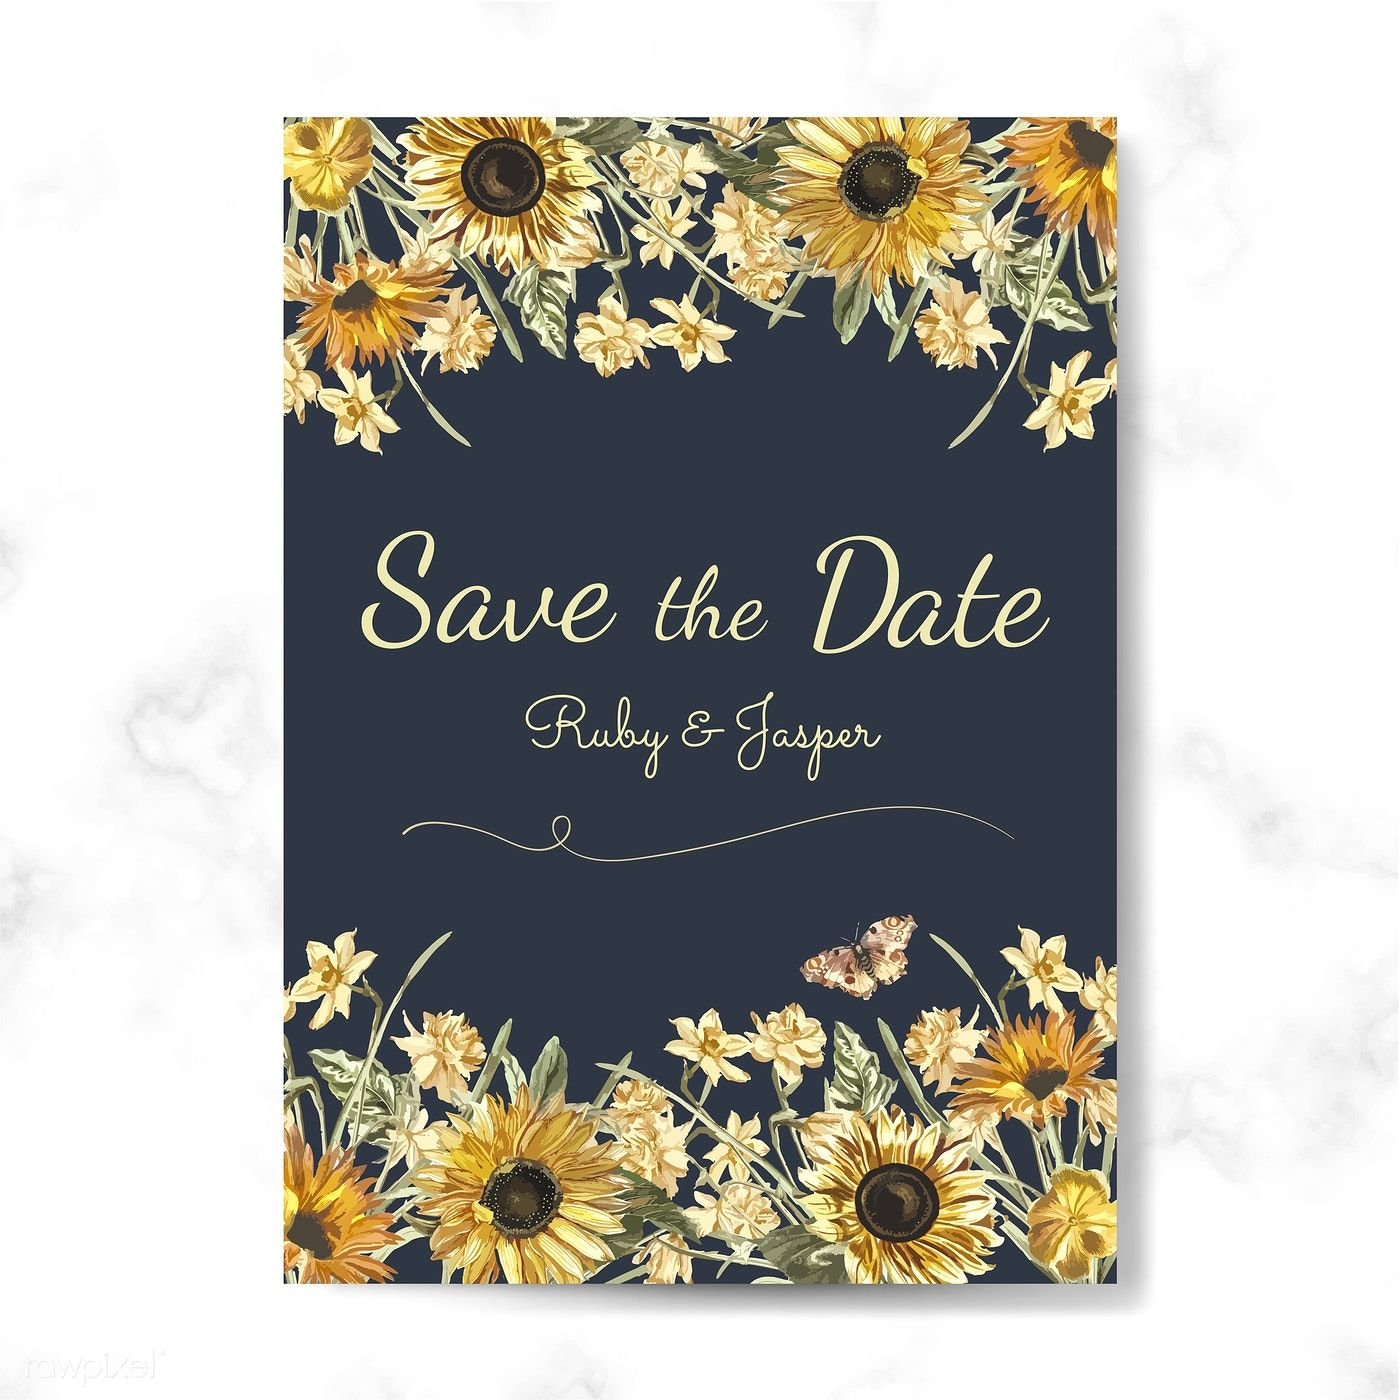 Save the date wedding invitation mockup vector  free image by